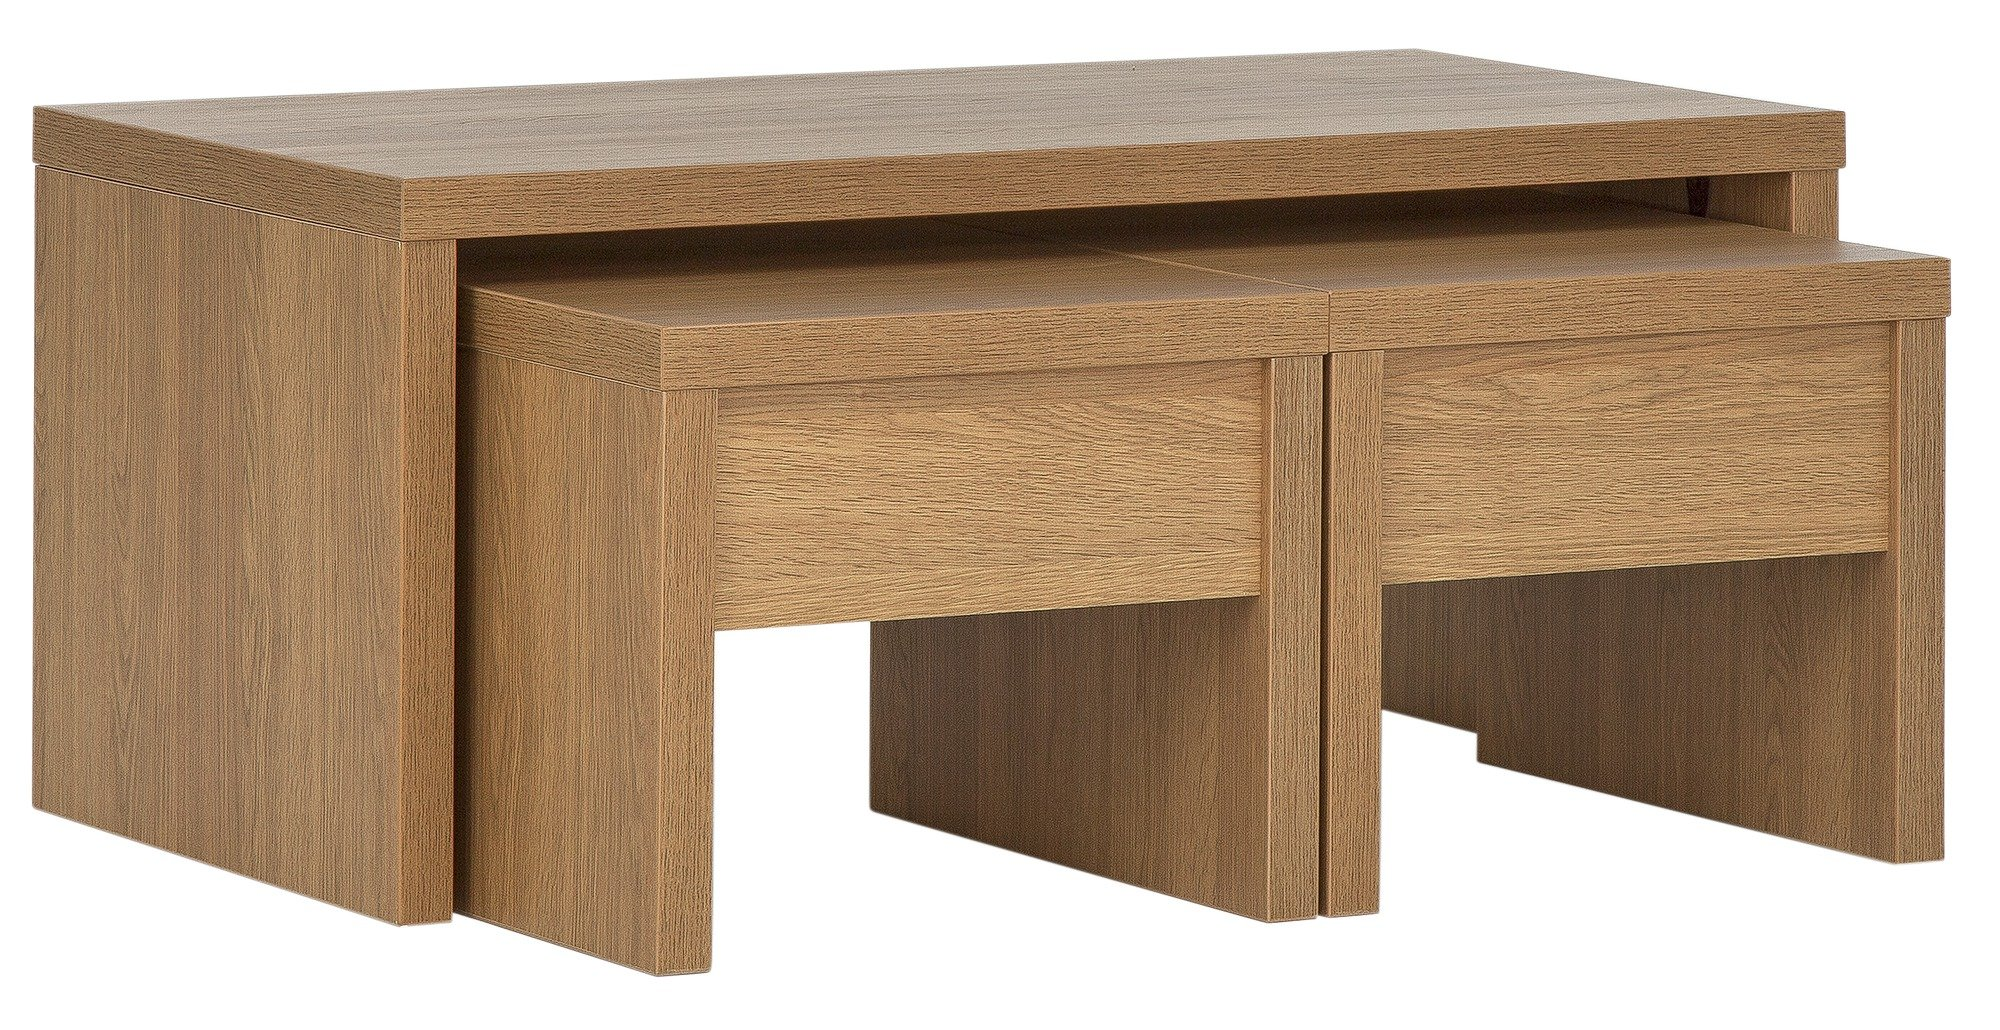 Argos Home Coffee Table Set With 2 Side Tables460/4969